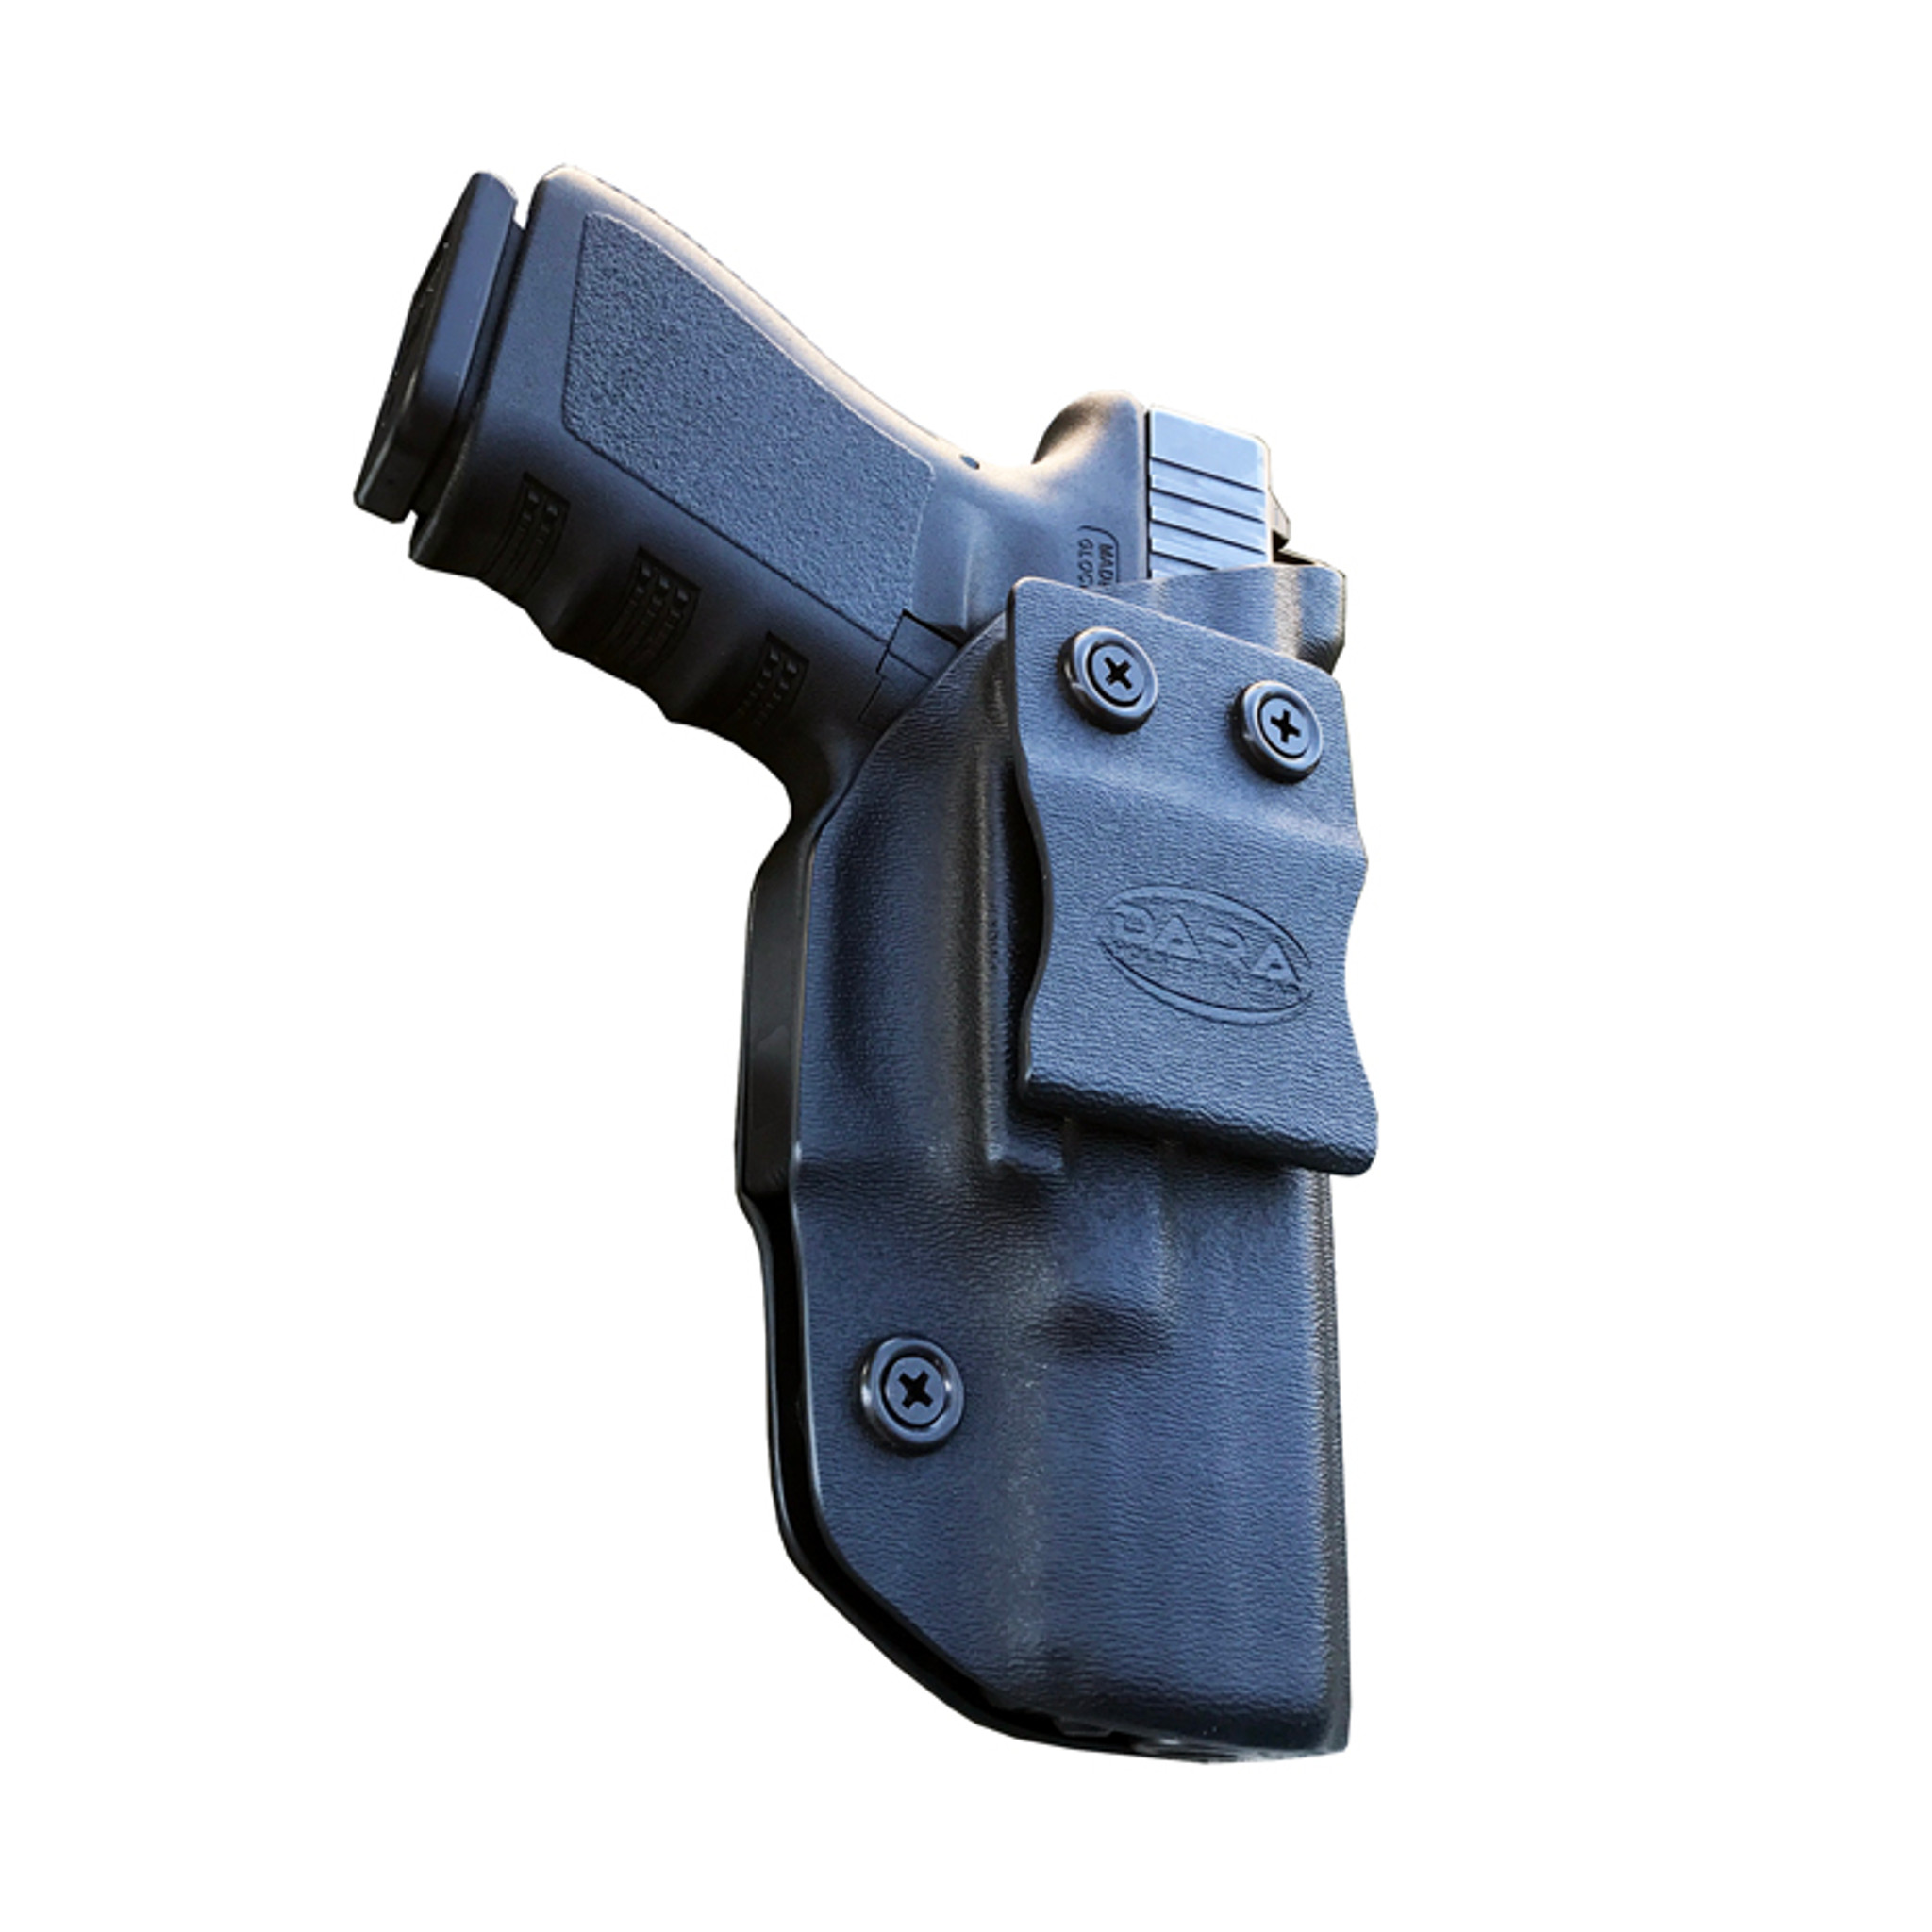 AIWB Holster with Wedge for Glock 19